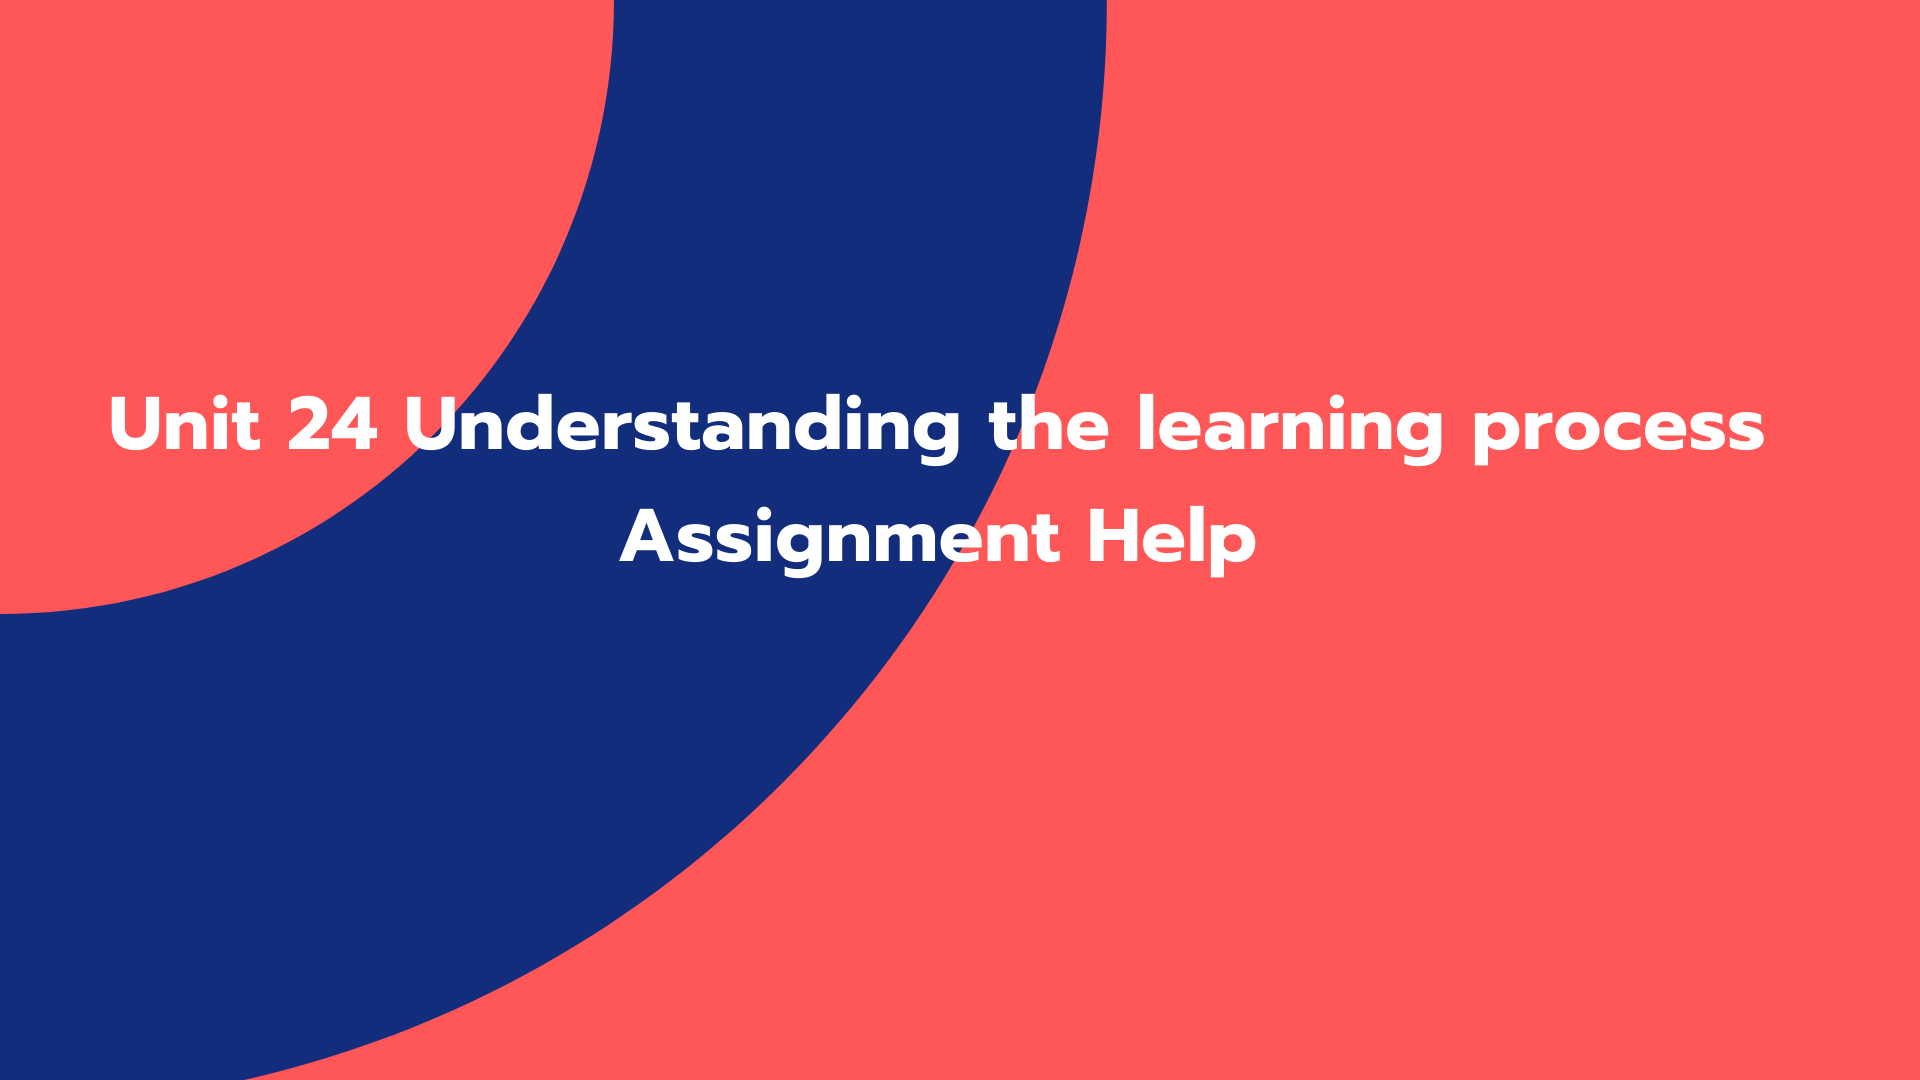 Unit 24 Understanding the learning process Assignment Help